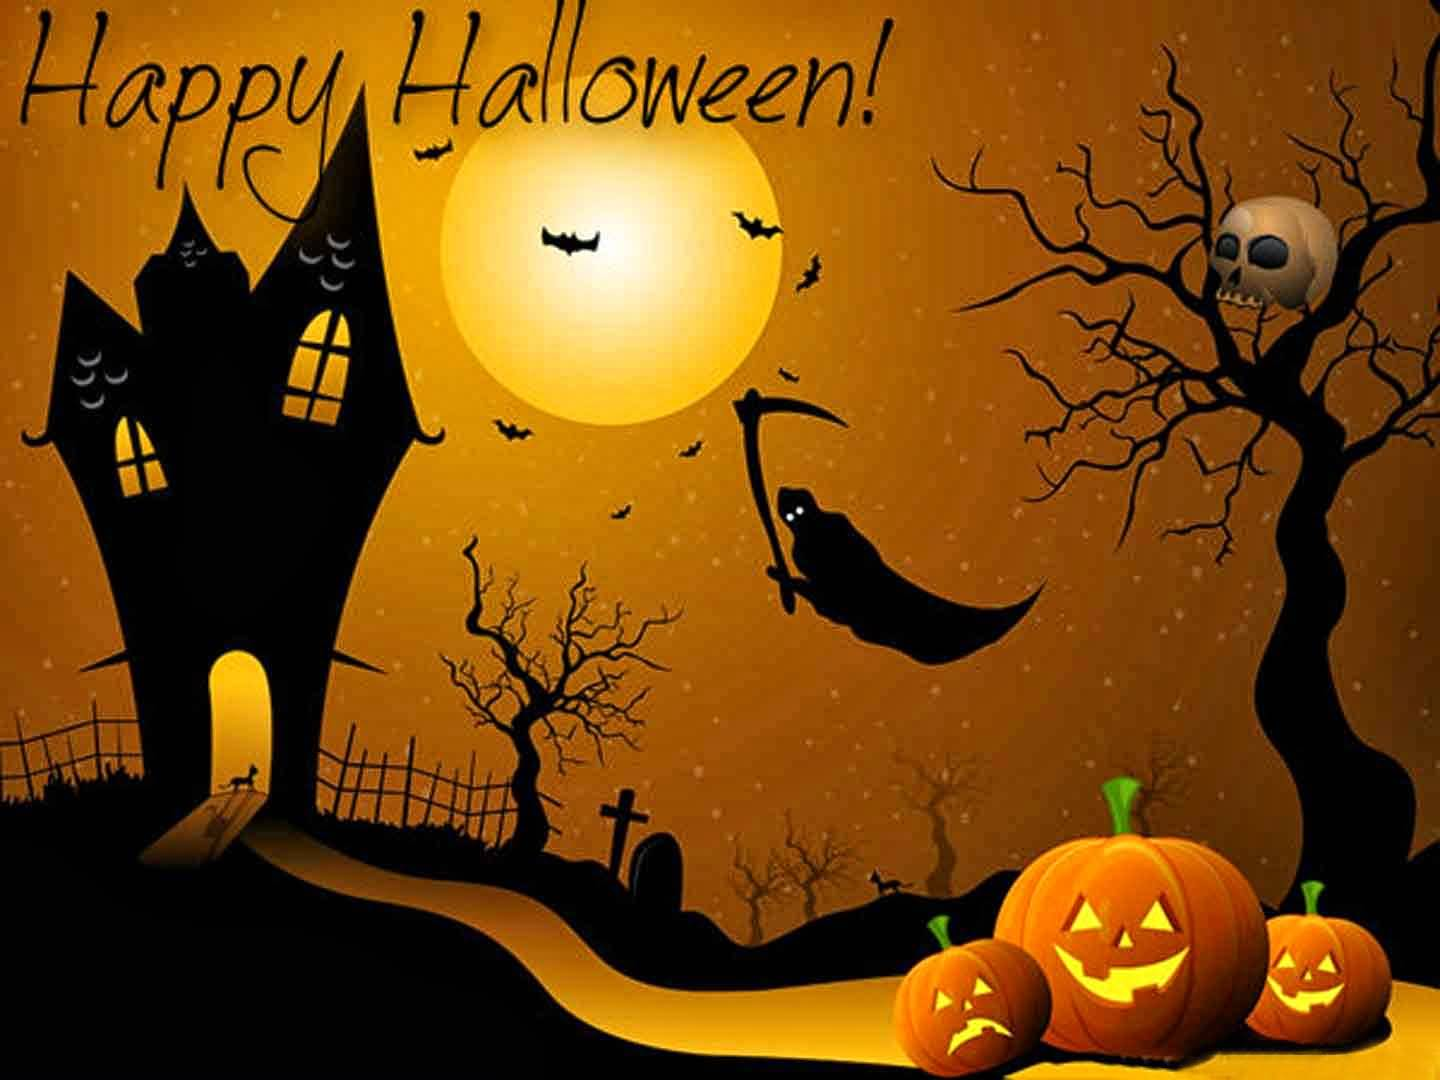 22 Most Beautiful Happy Halloween Greeting Card Images And Photos